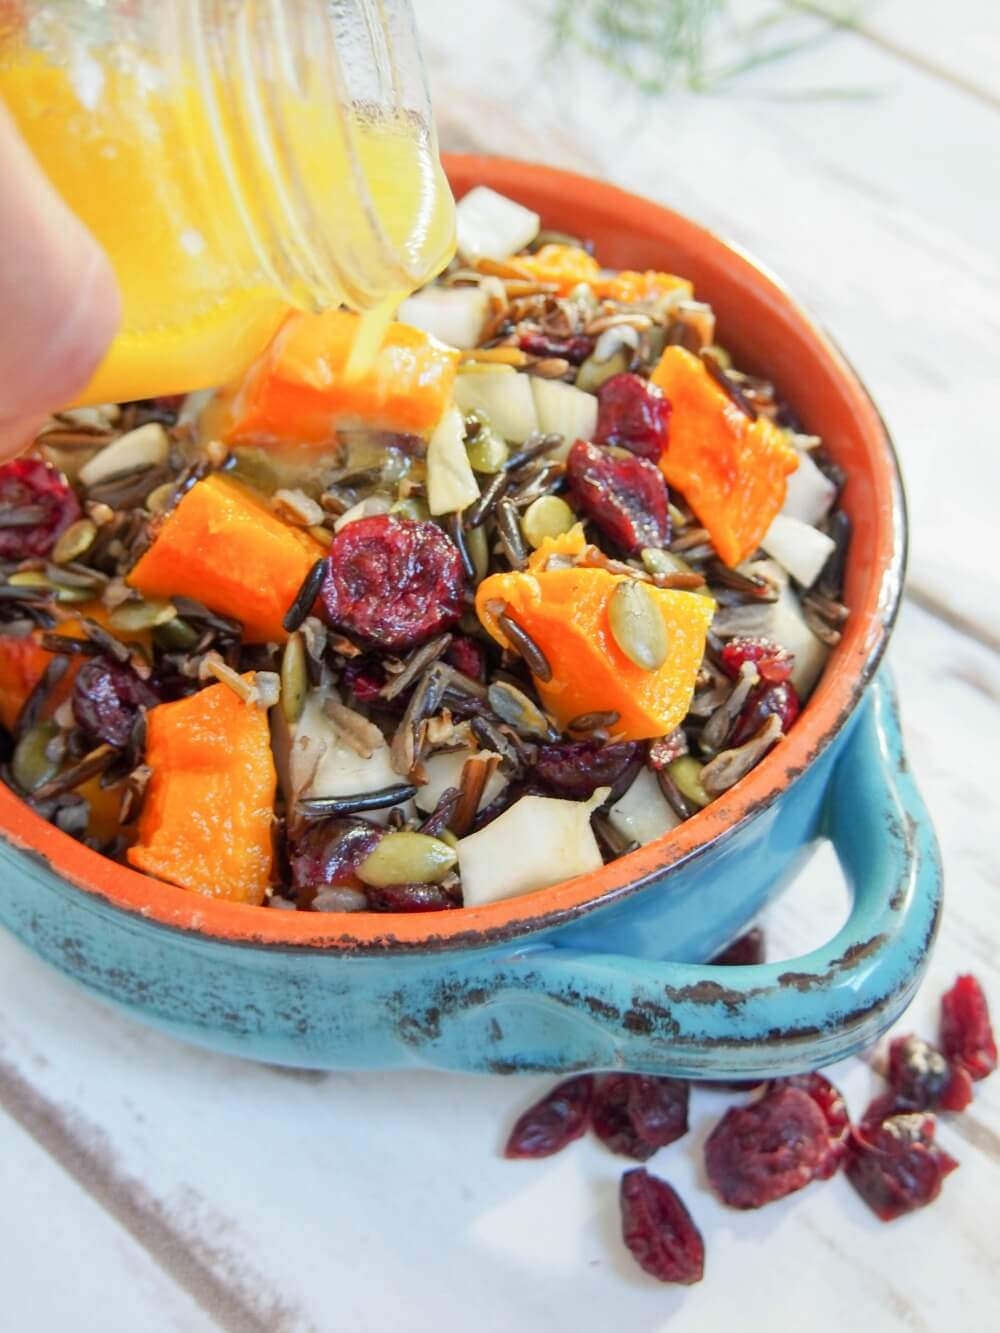 Butternut squash wild rice salad with cranberries and fennel, pouring on the dressing